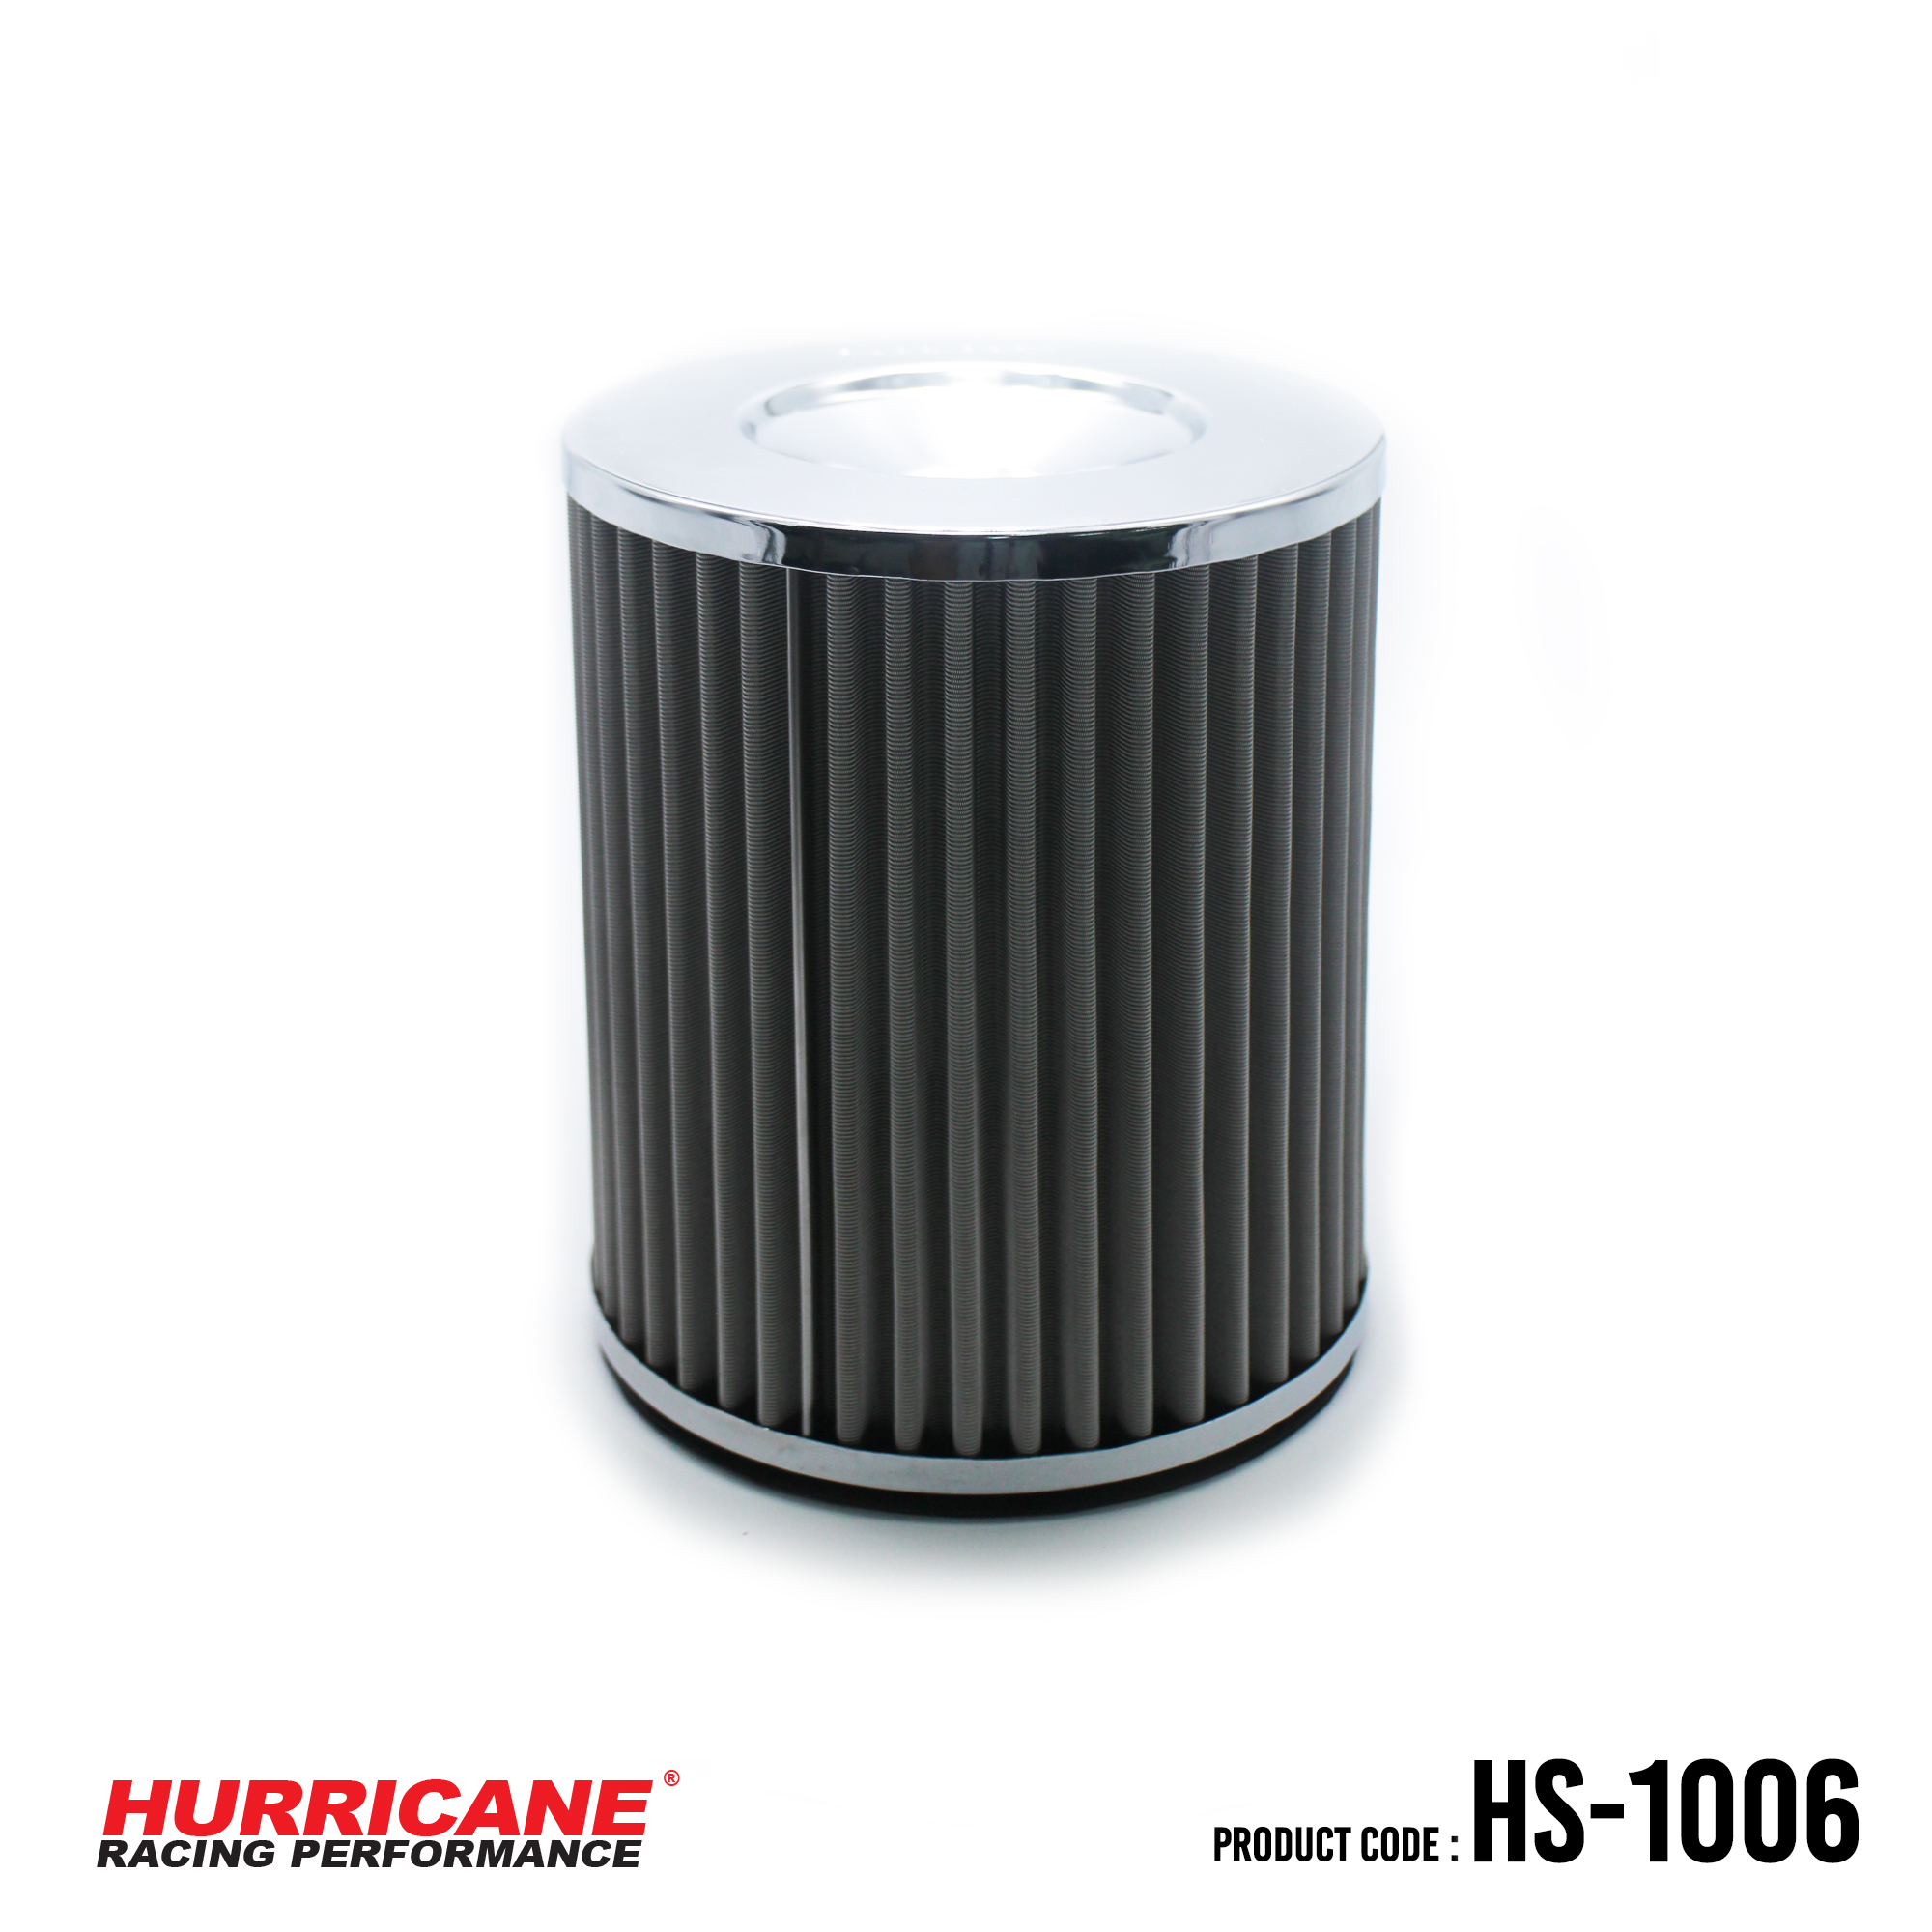 HURRICANE STAINLESS STEEL AIR FILTER FOR HS-1006 Mitsubishi